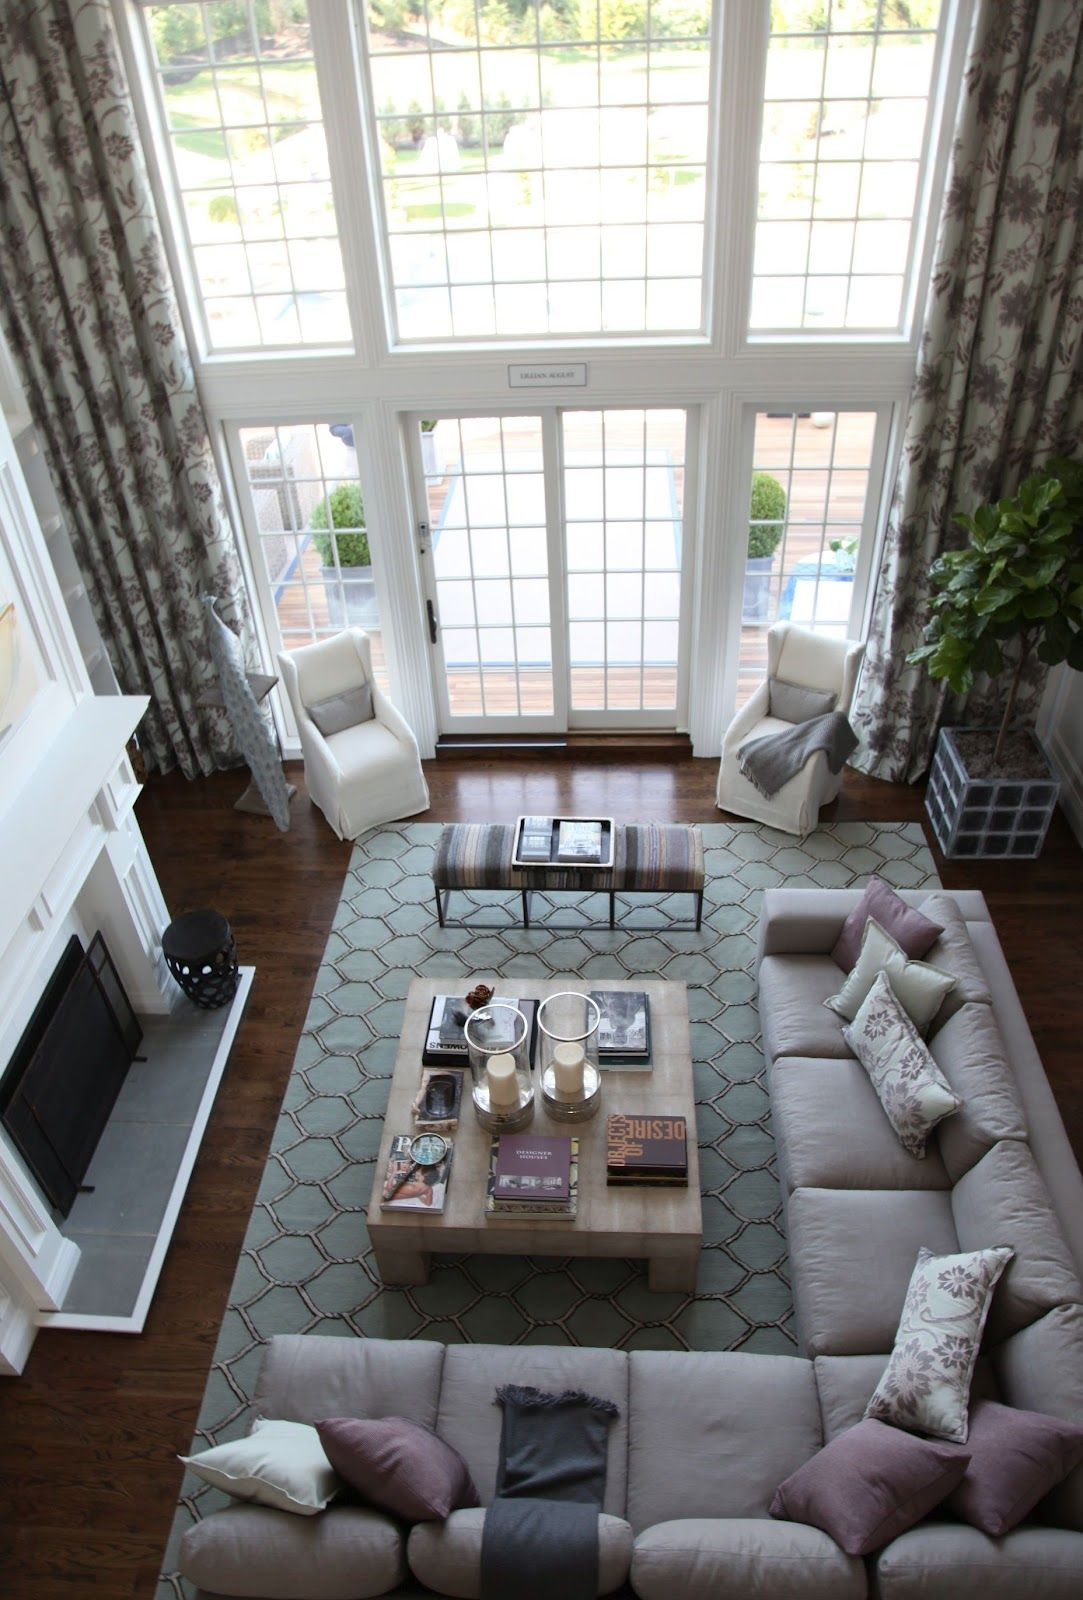 Design guide how to style  sectional sofa interiors pinterest decoracao de casa salas and also rh br